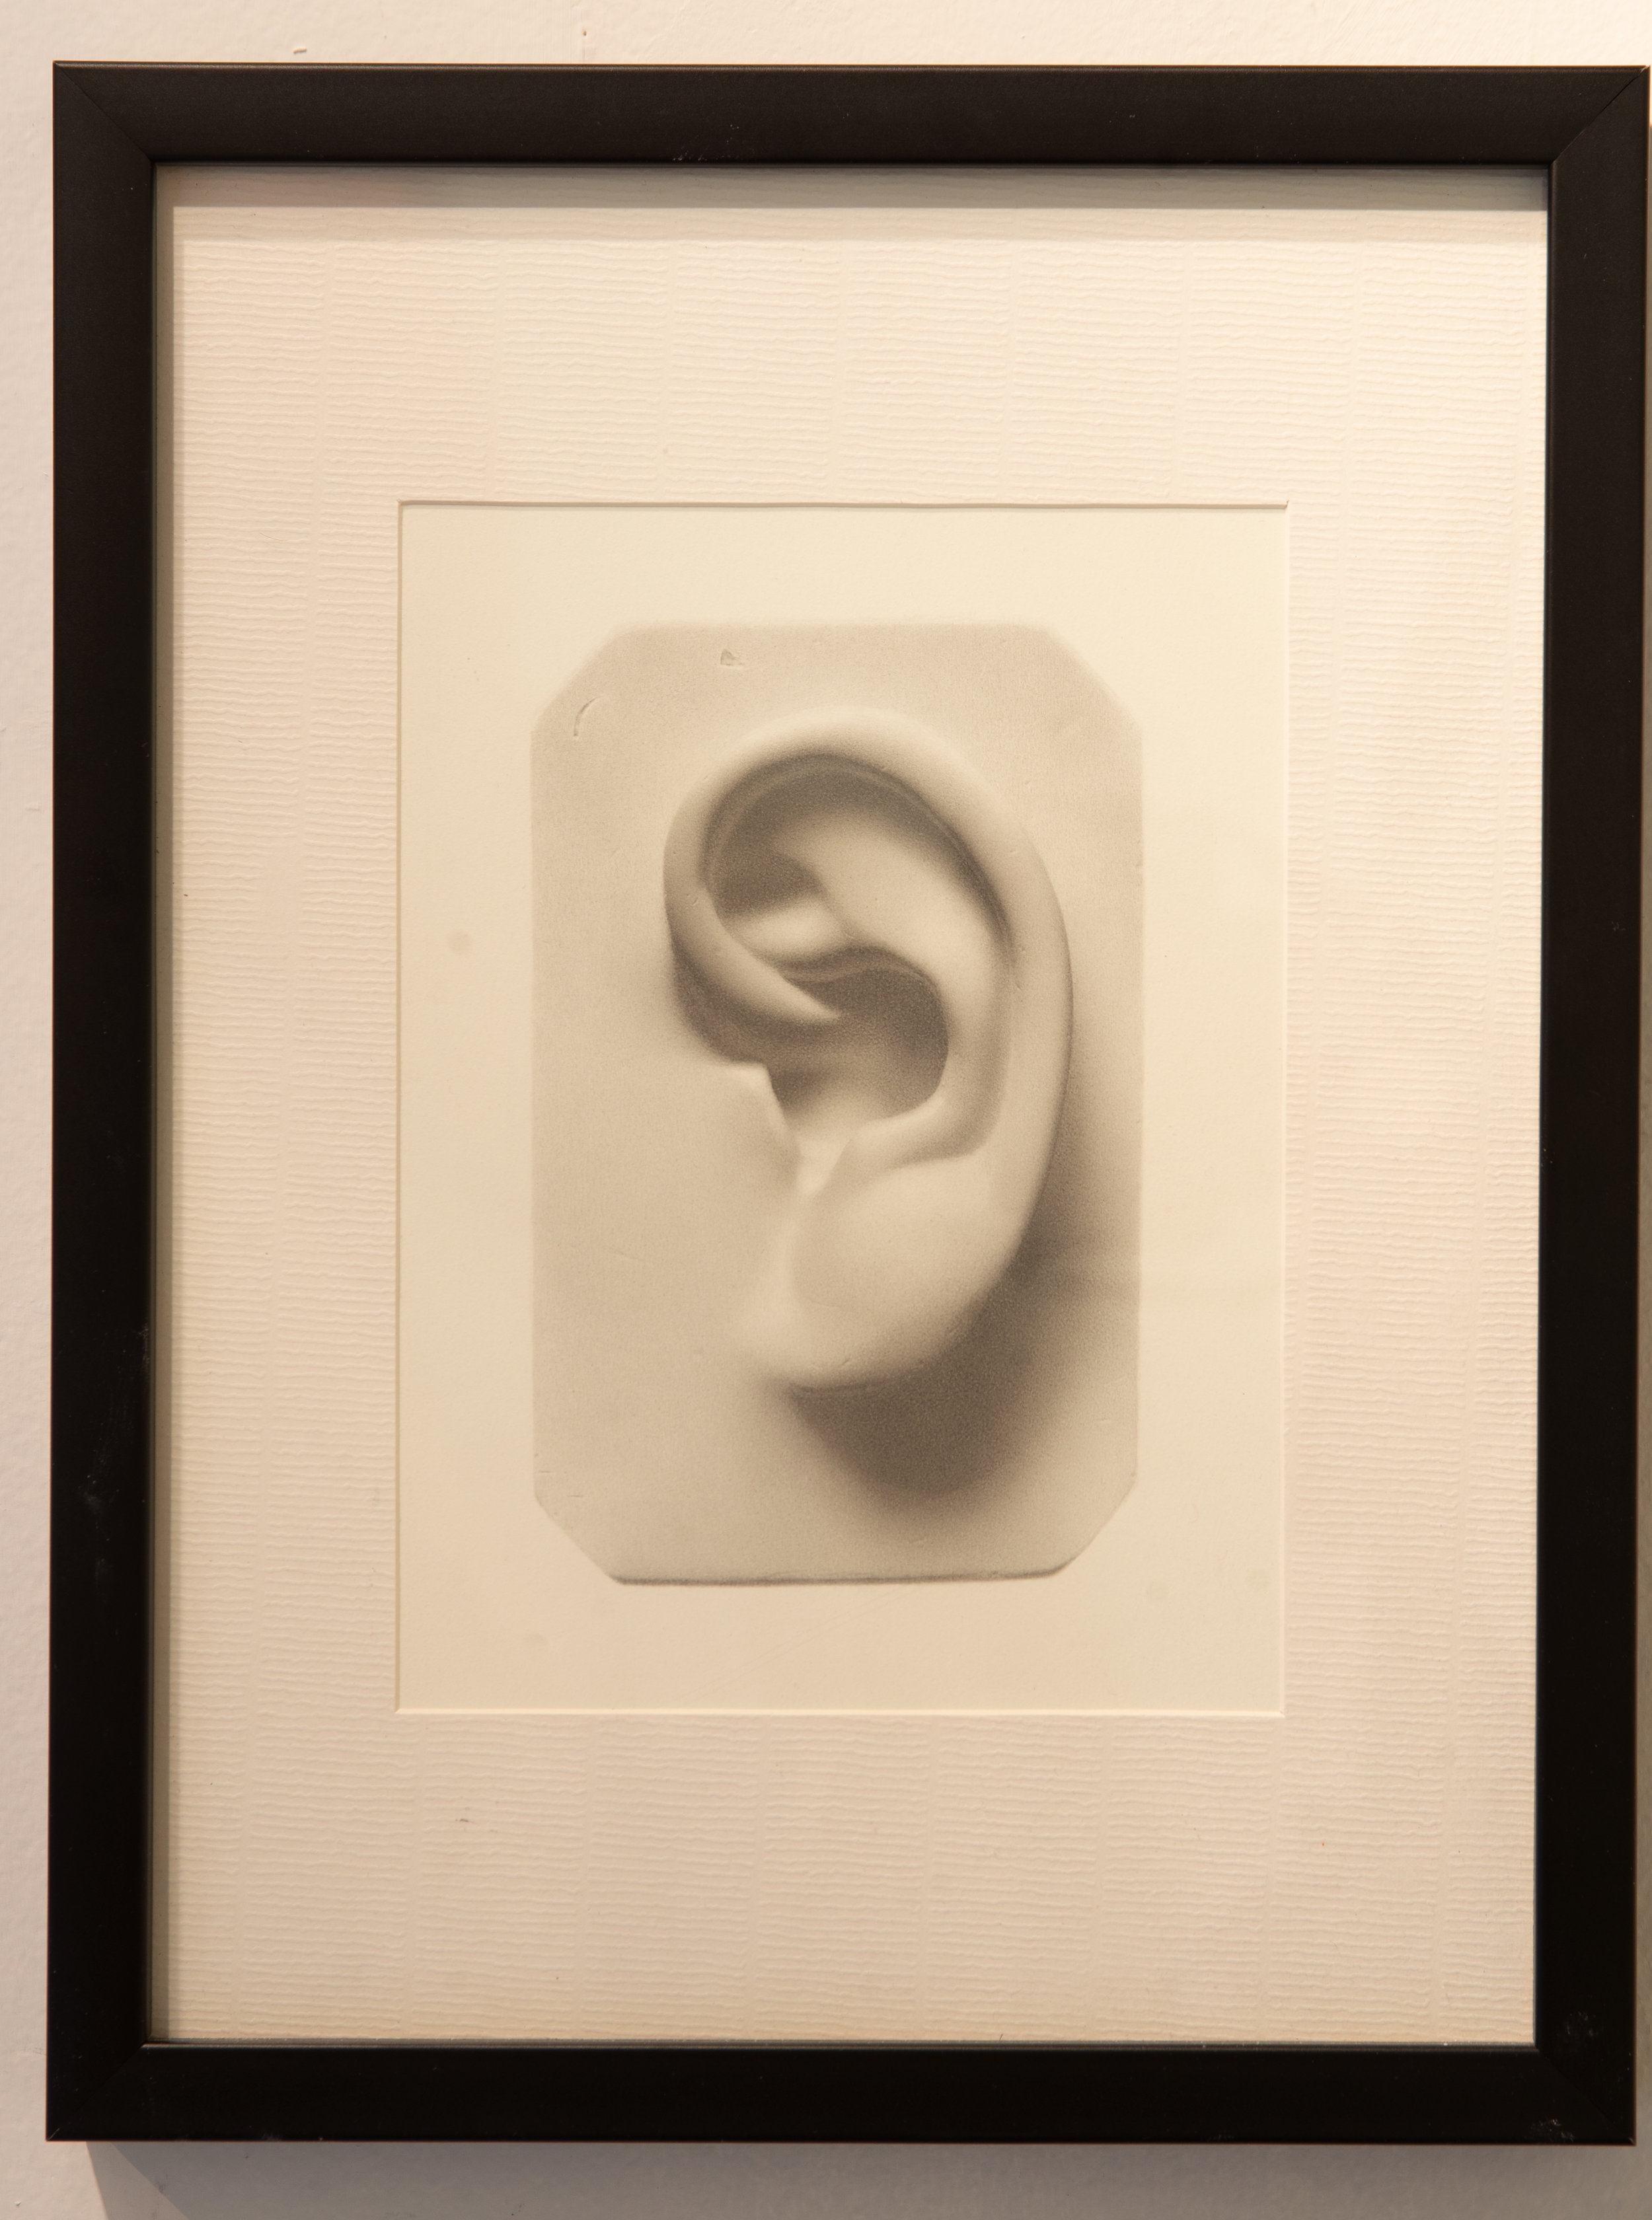 Untitled( Ear)  ANDREW SHEARS graphite on paper 13x10